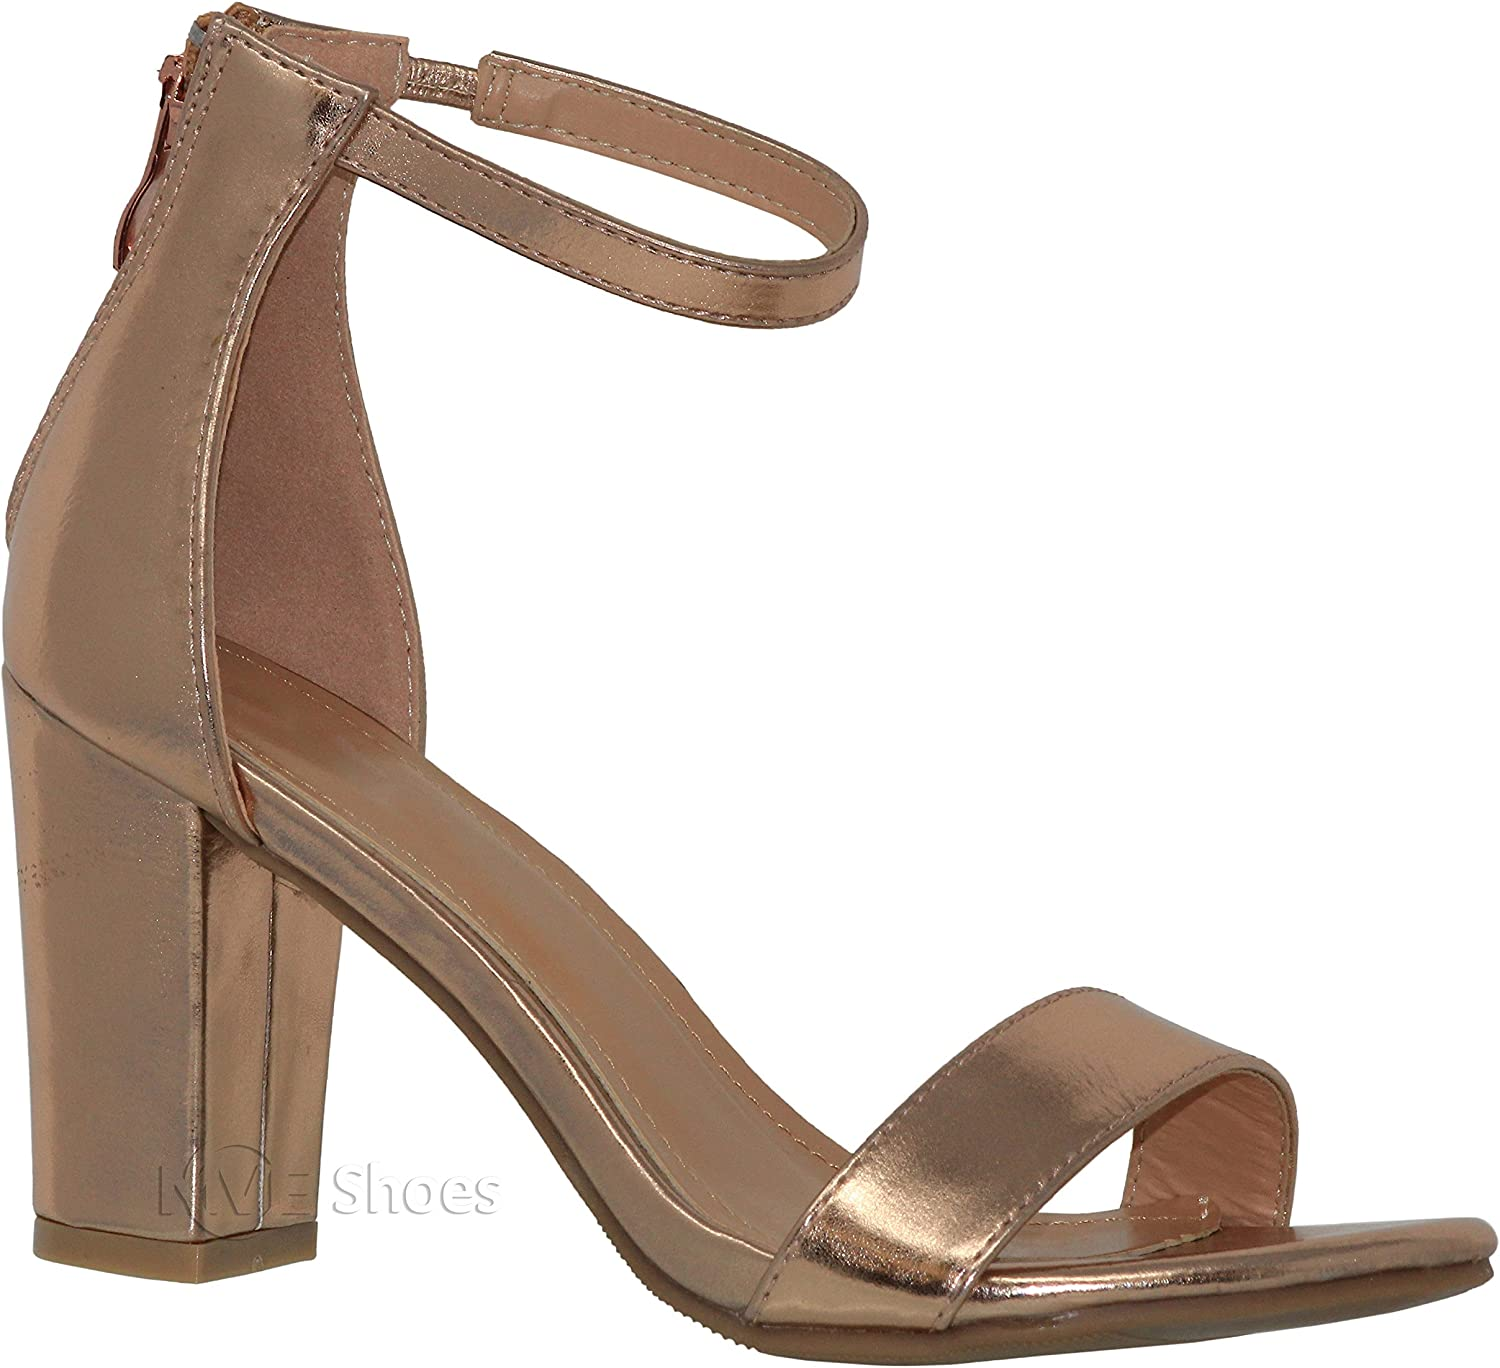 MVE shoes Women's Sandal - Chunky Block Heel Ankle Strap -Open Toe Summer Dress shoes